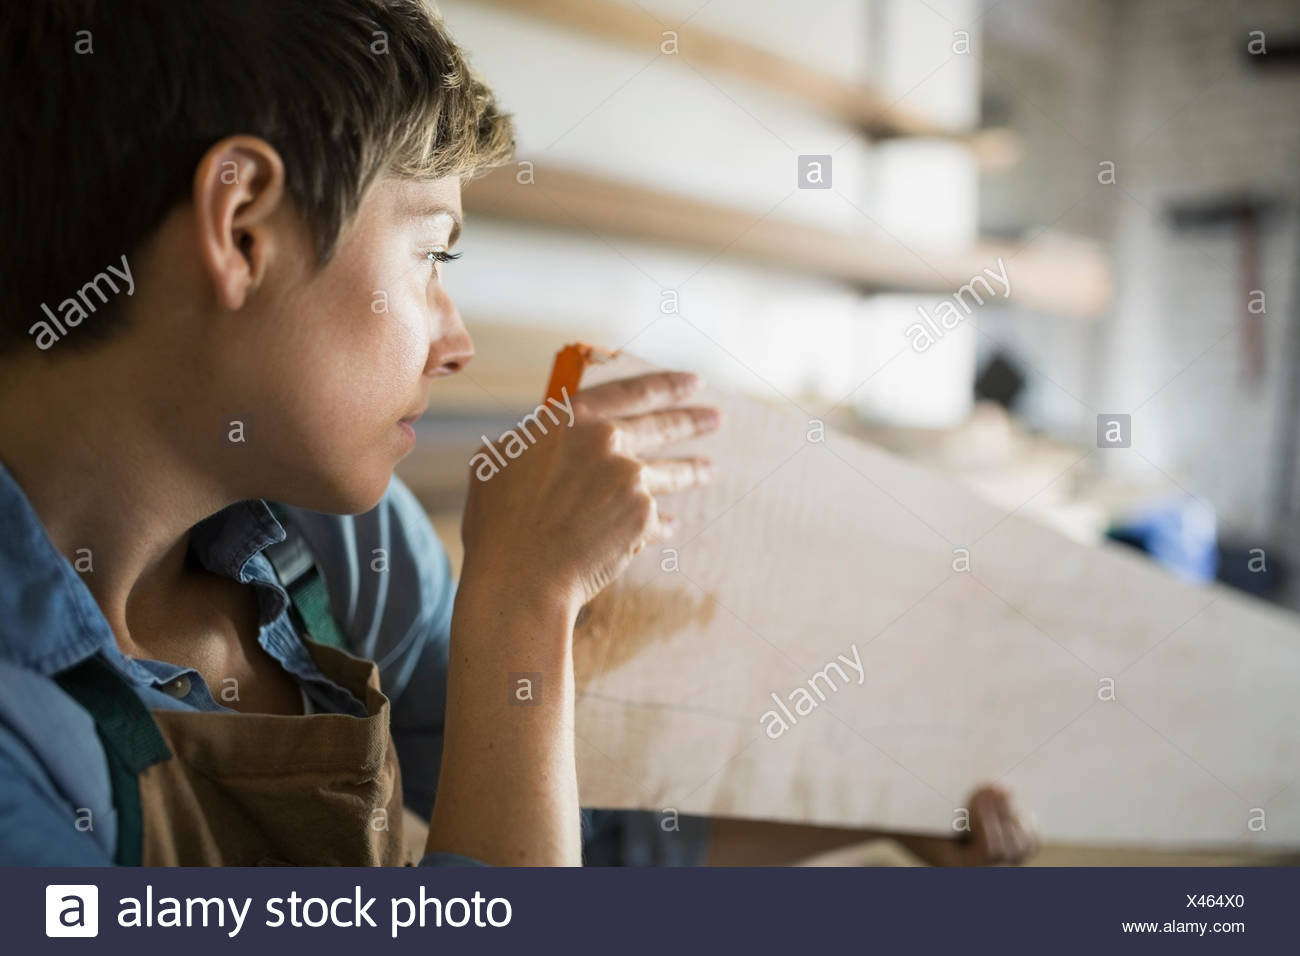 Woman examining wood plank in workshop - Stock Image